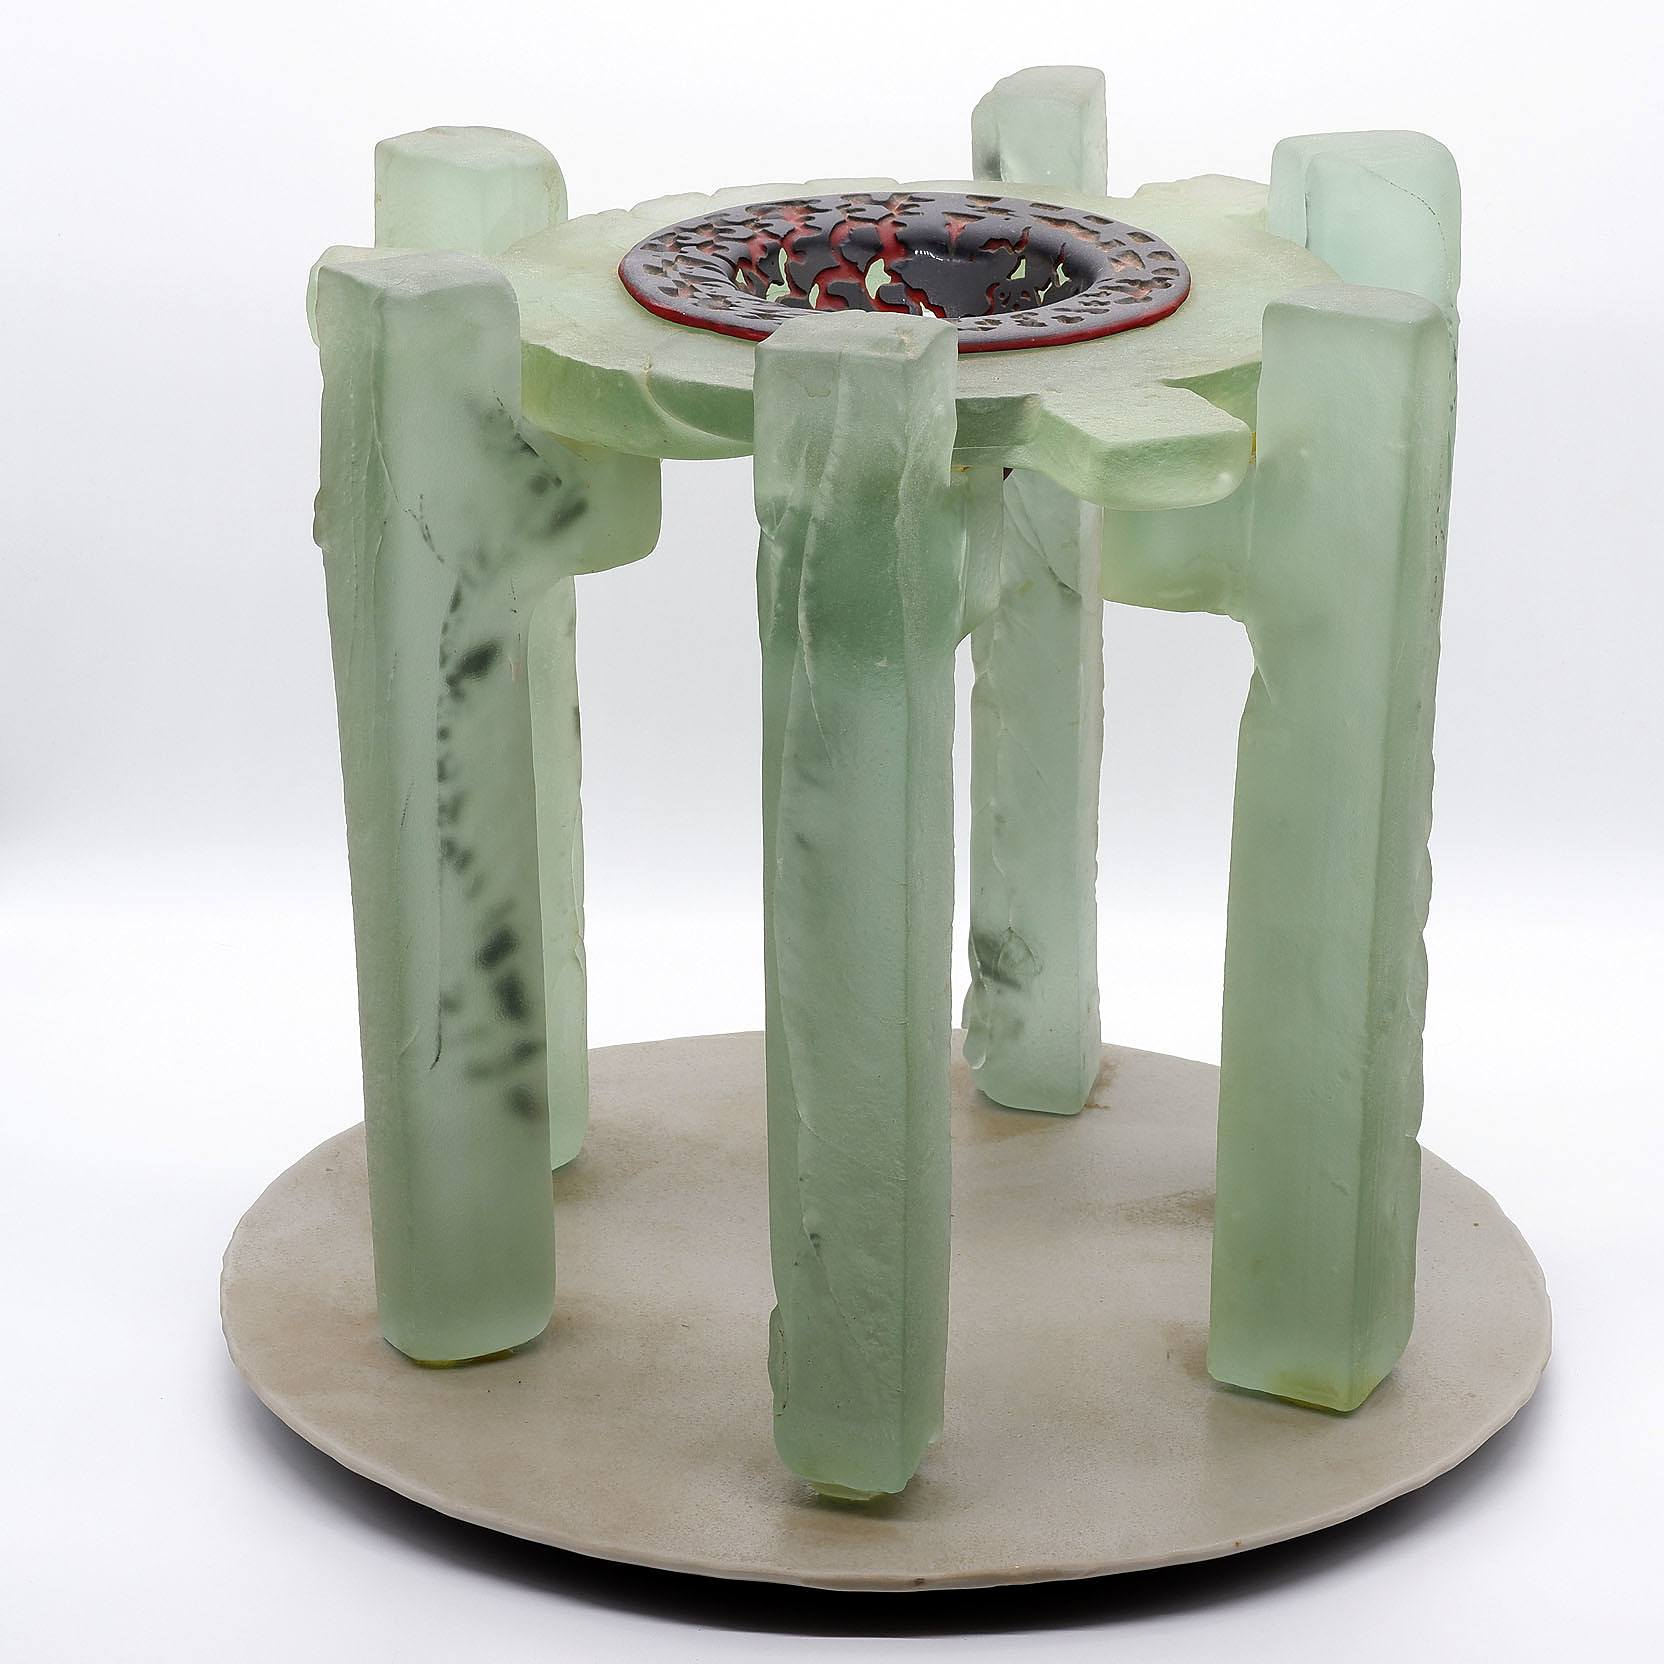 'Large Cast, Fused, Slumped and Acid Etched Glass Centerpiece'